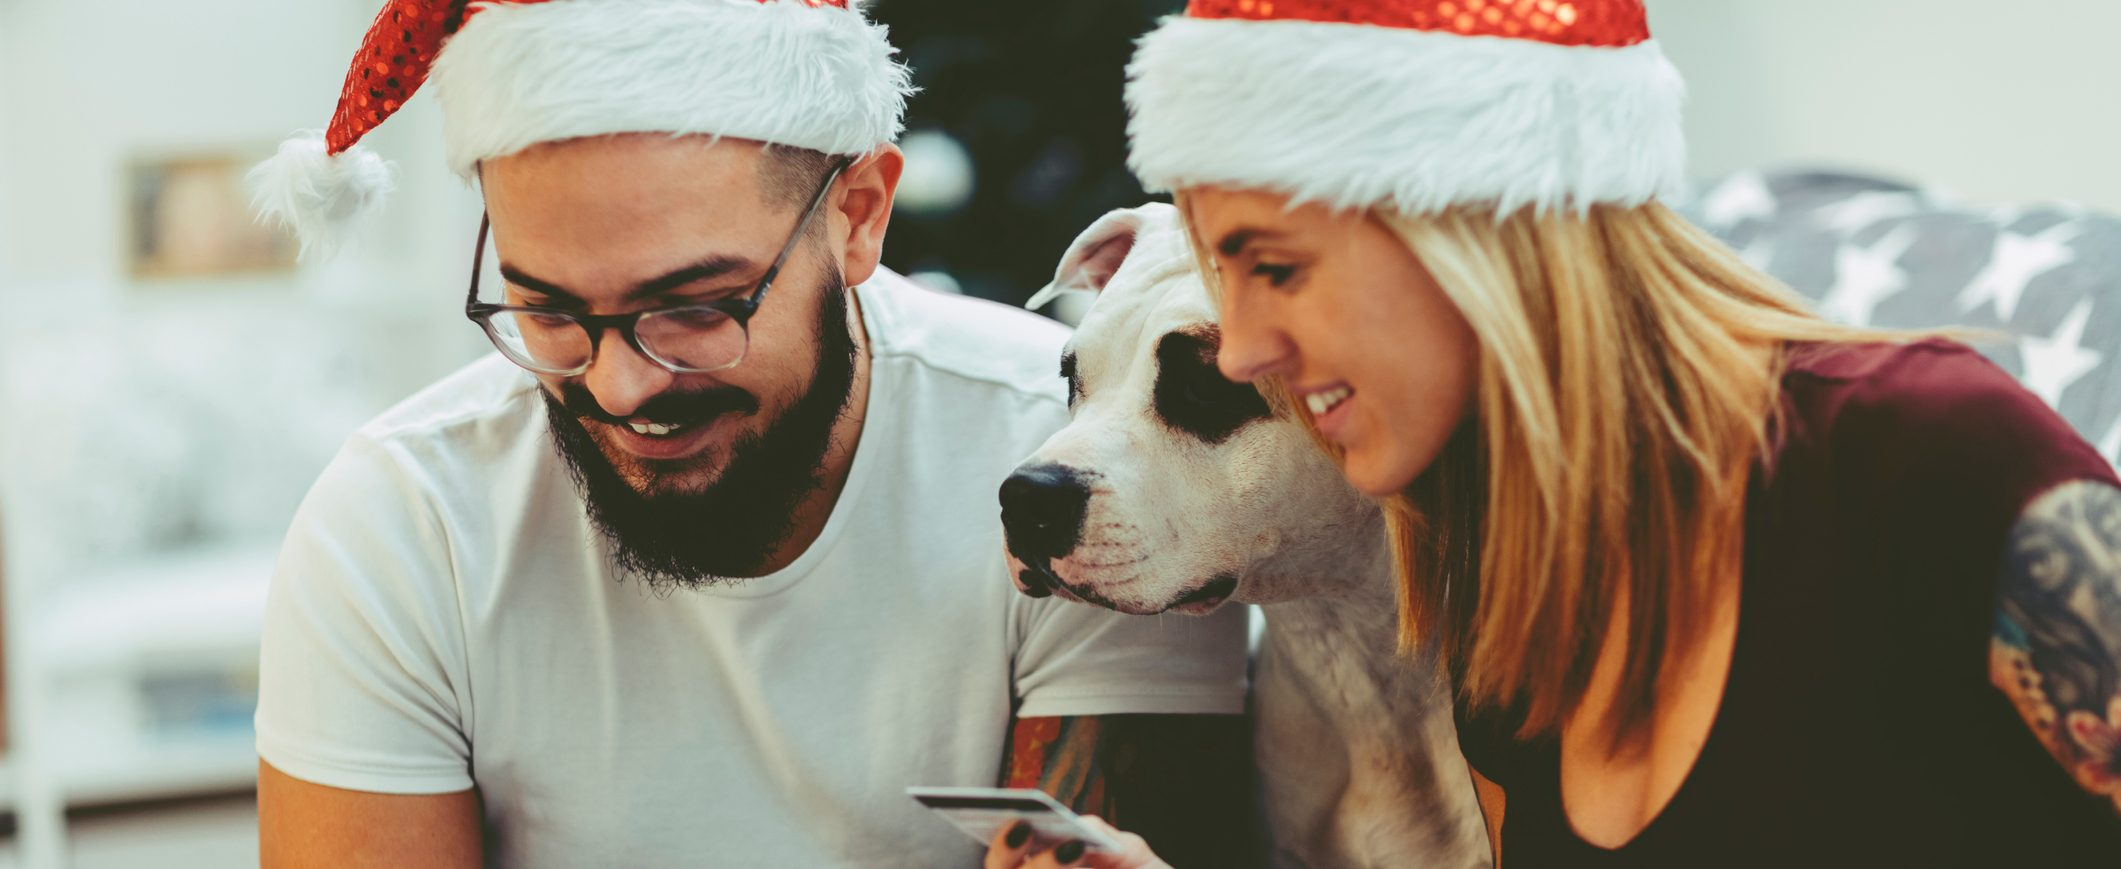 Stay on budget this holiday season by having a plan